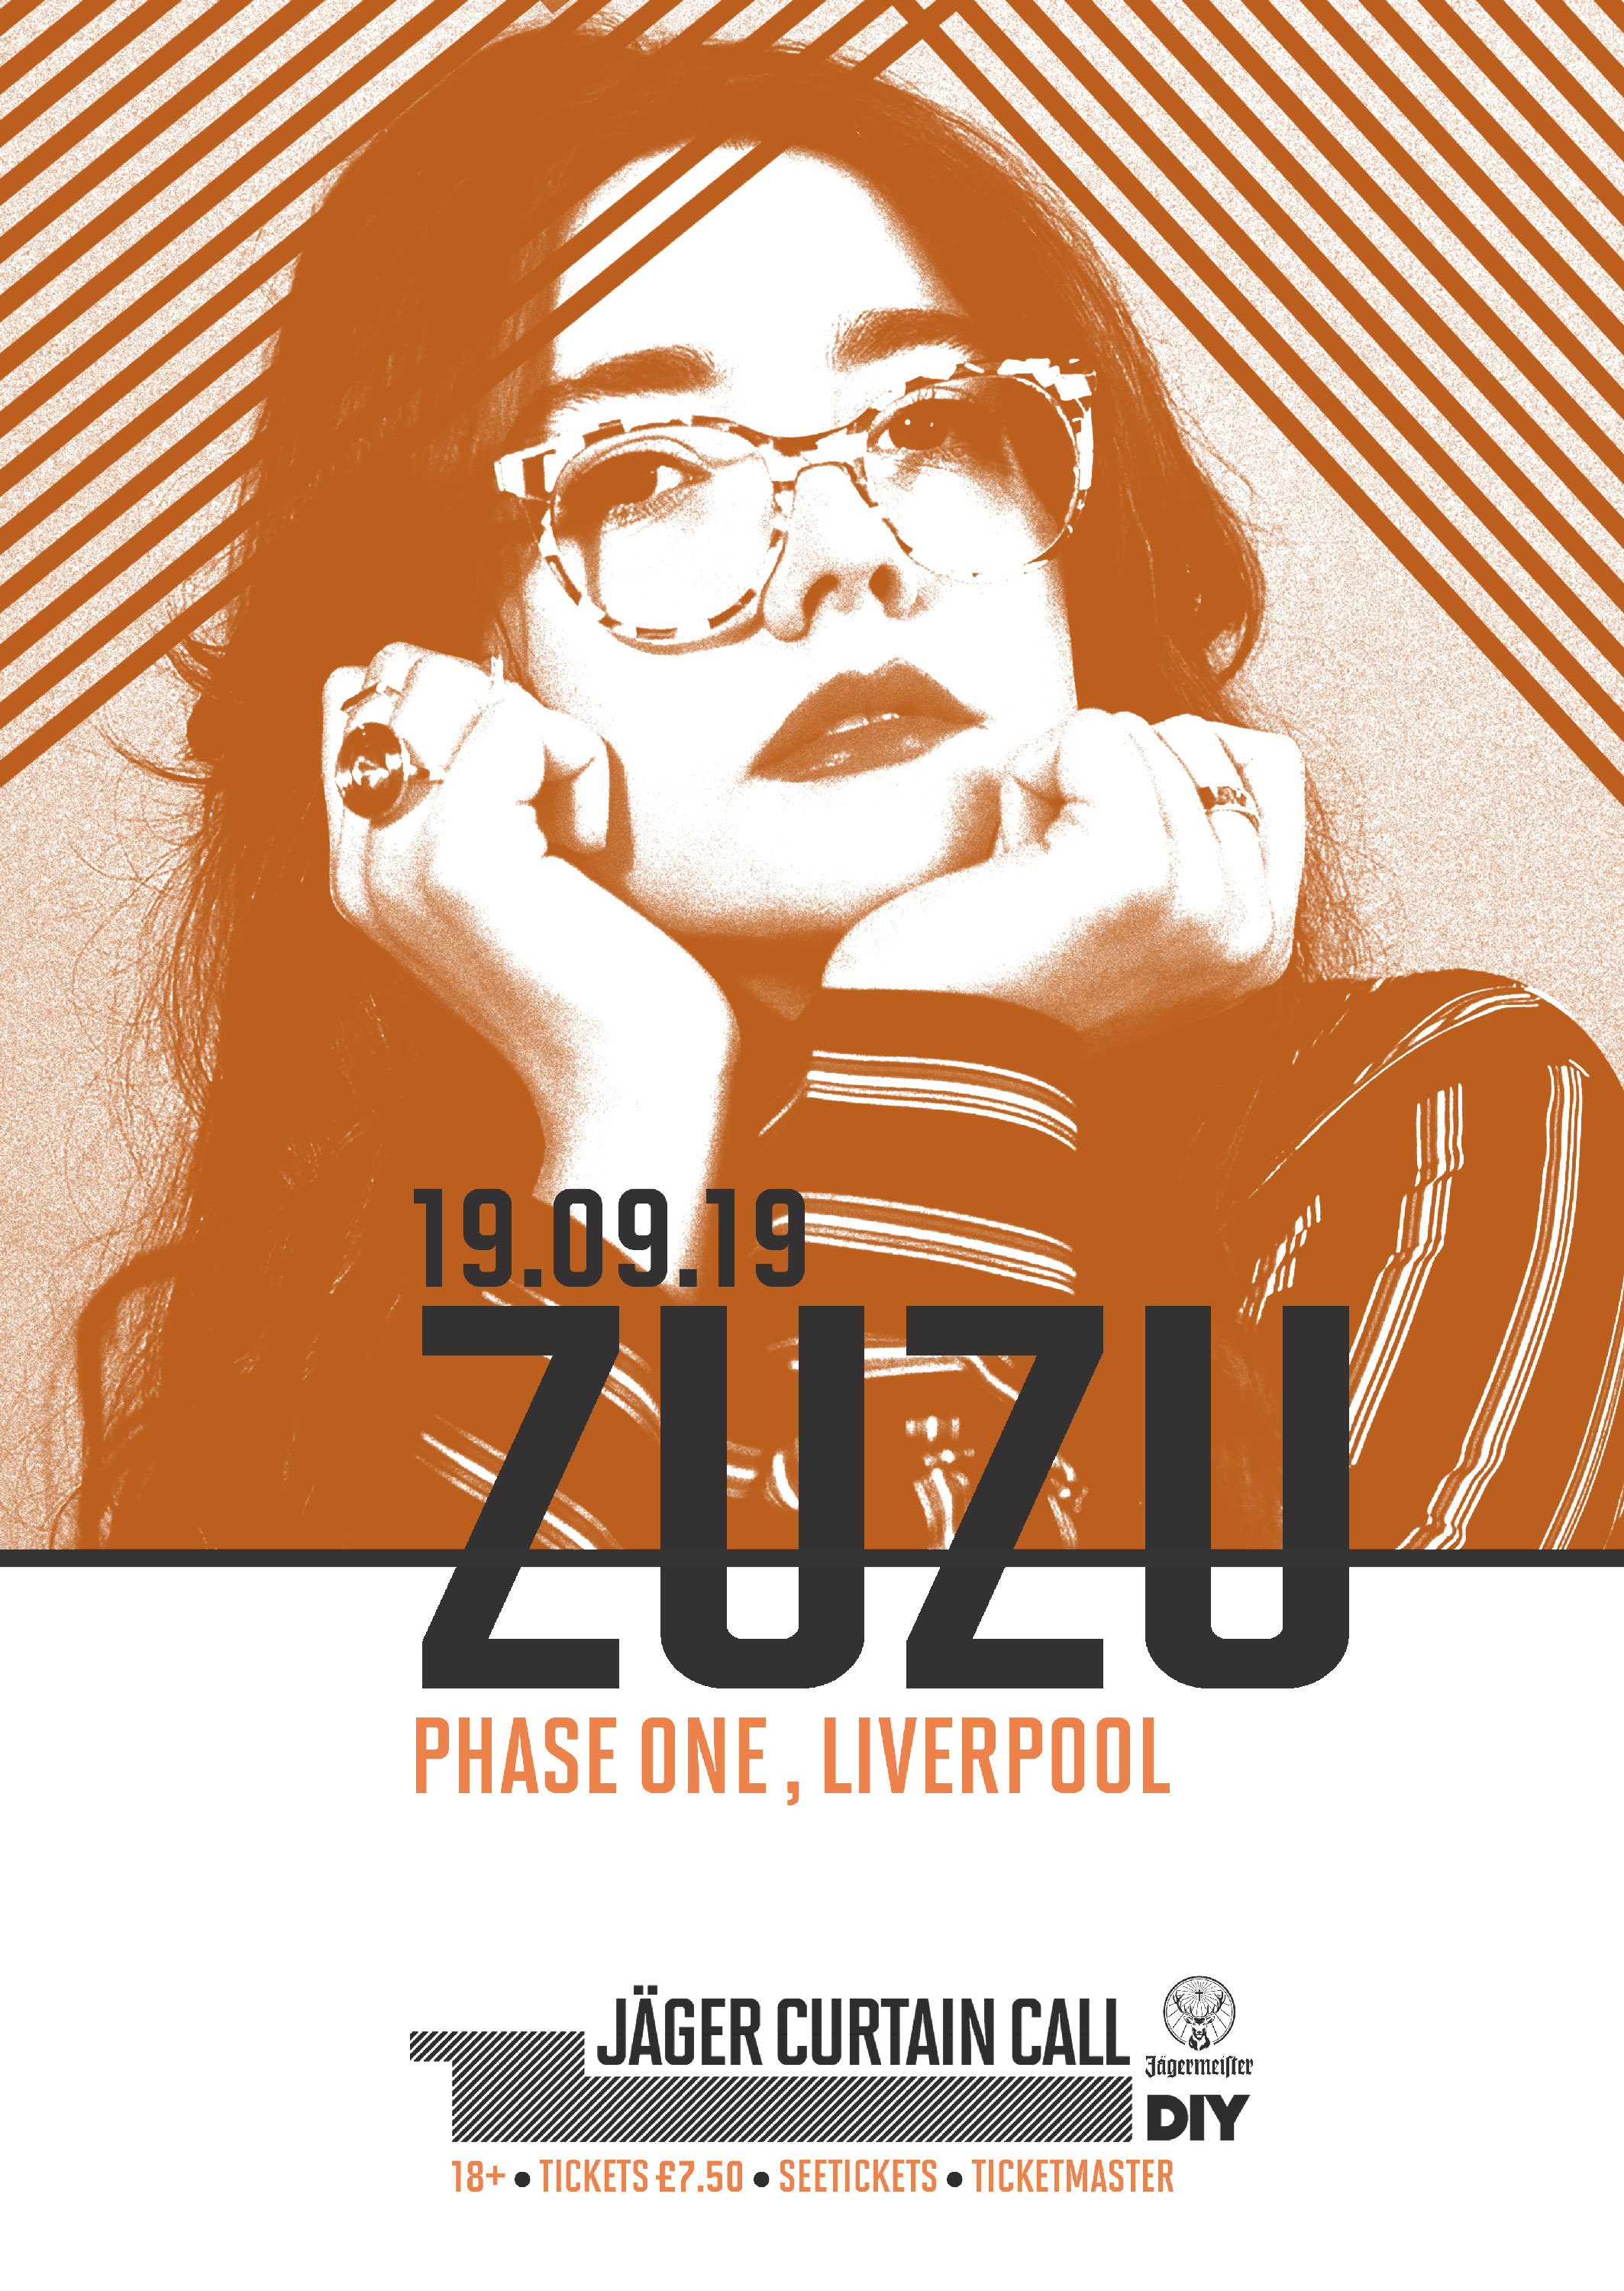 BTS: Zuzu plays Soho Radio for Jäger Curtain Call 2019